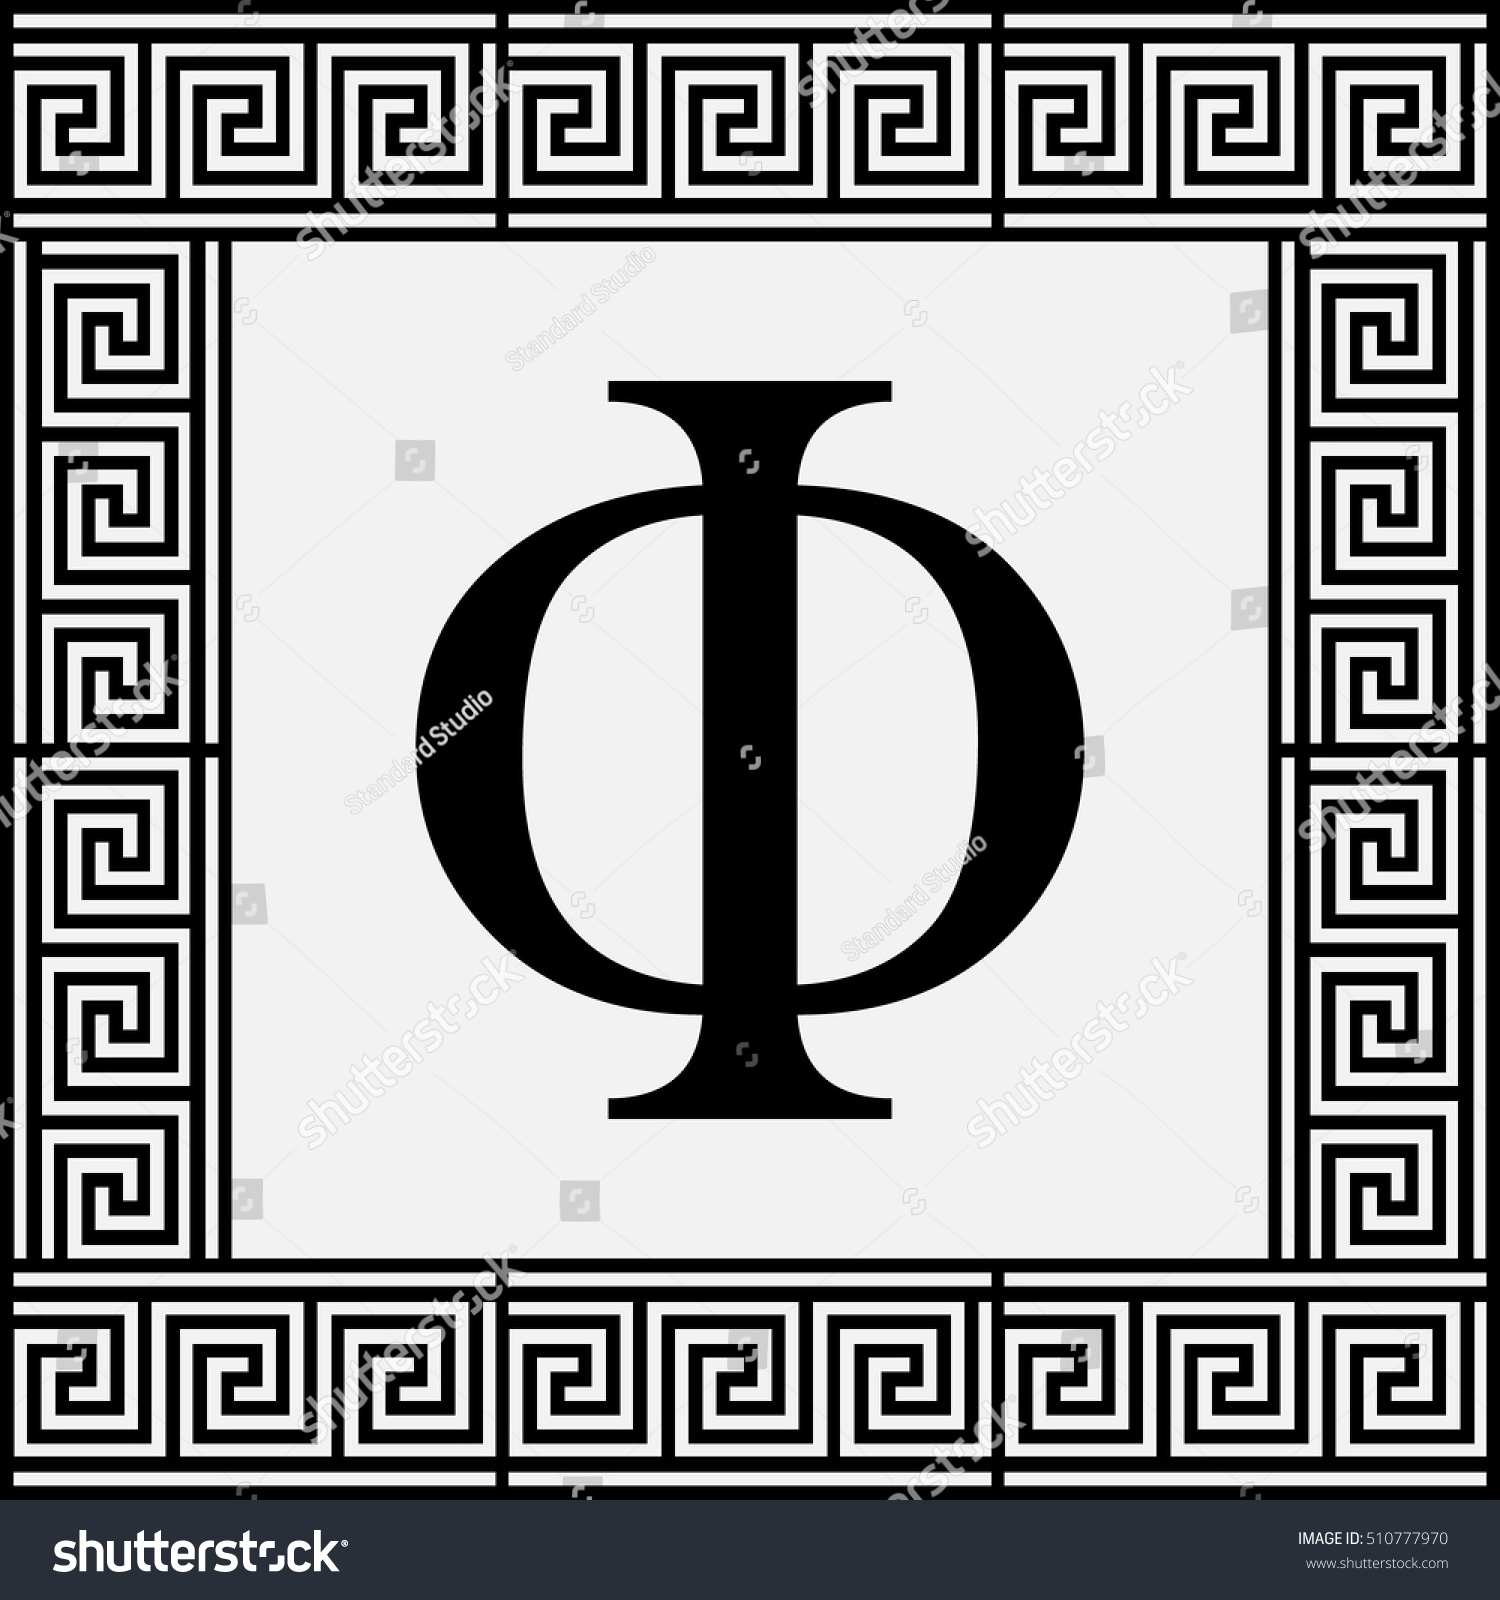 Phi greek letter phi symbol vector stock vector 510777970 phi greek letter phi symbol vector illustration biocorpaavc Image collections